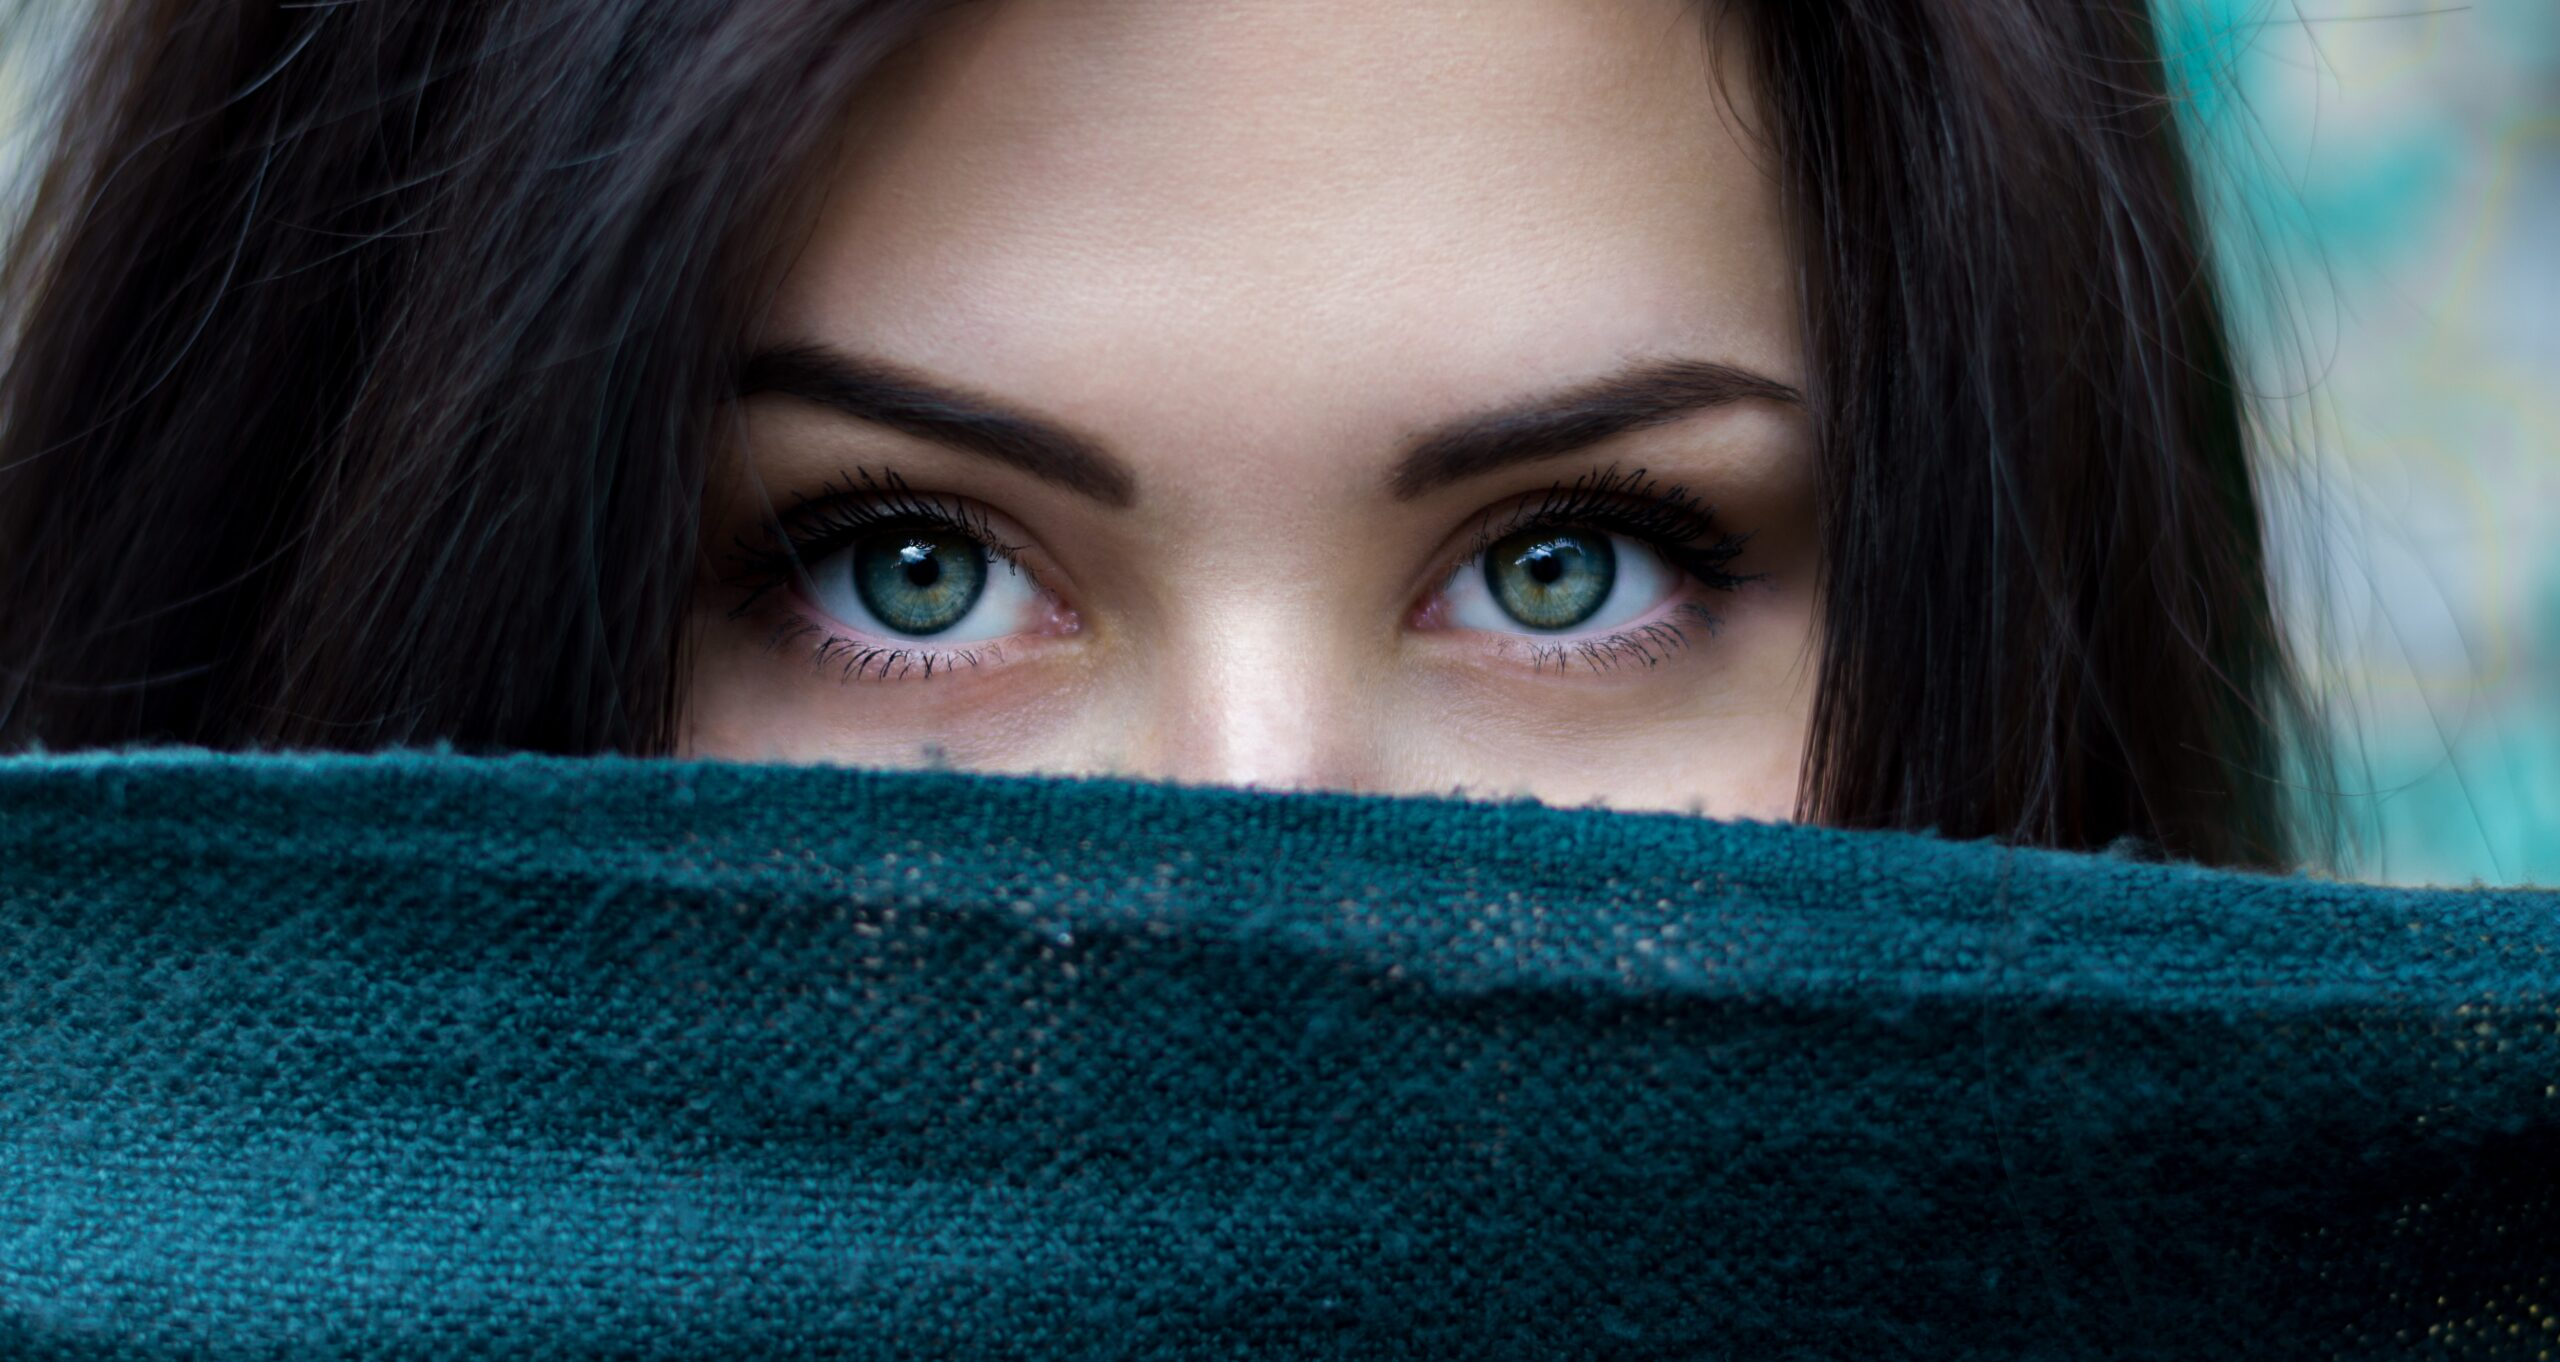 Woman with blue eye and brown hair looking over blue scarf - How To Use Your Body To Deliver Your Real Estate Presentation